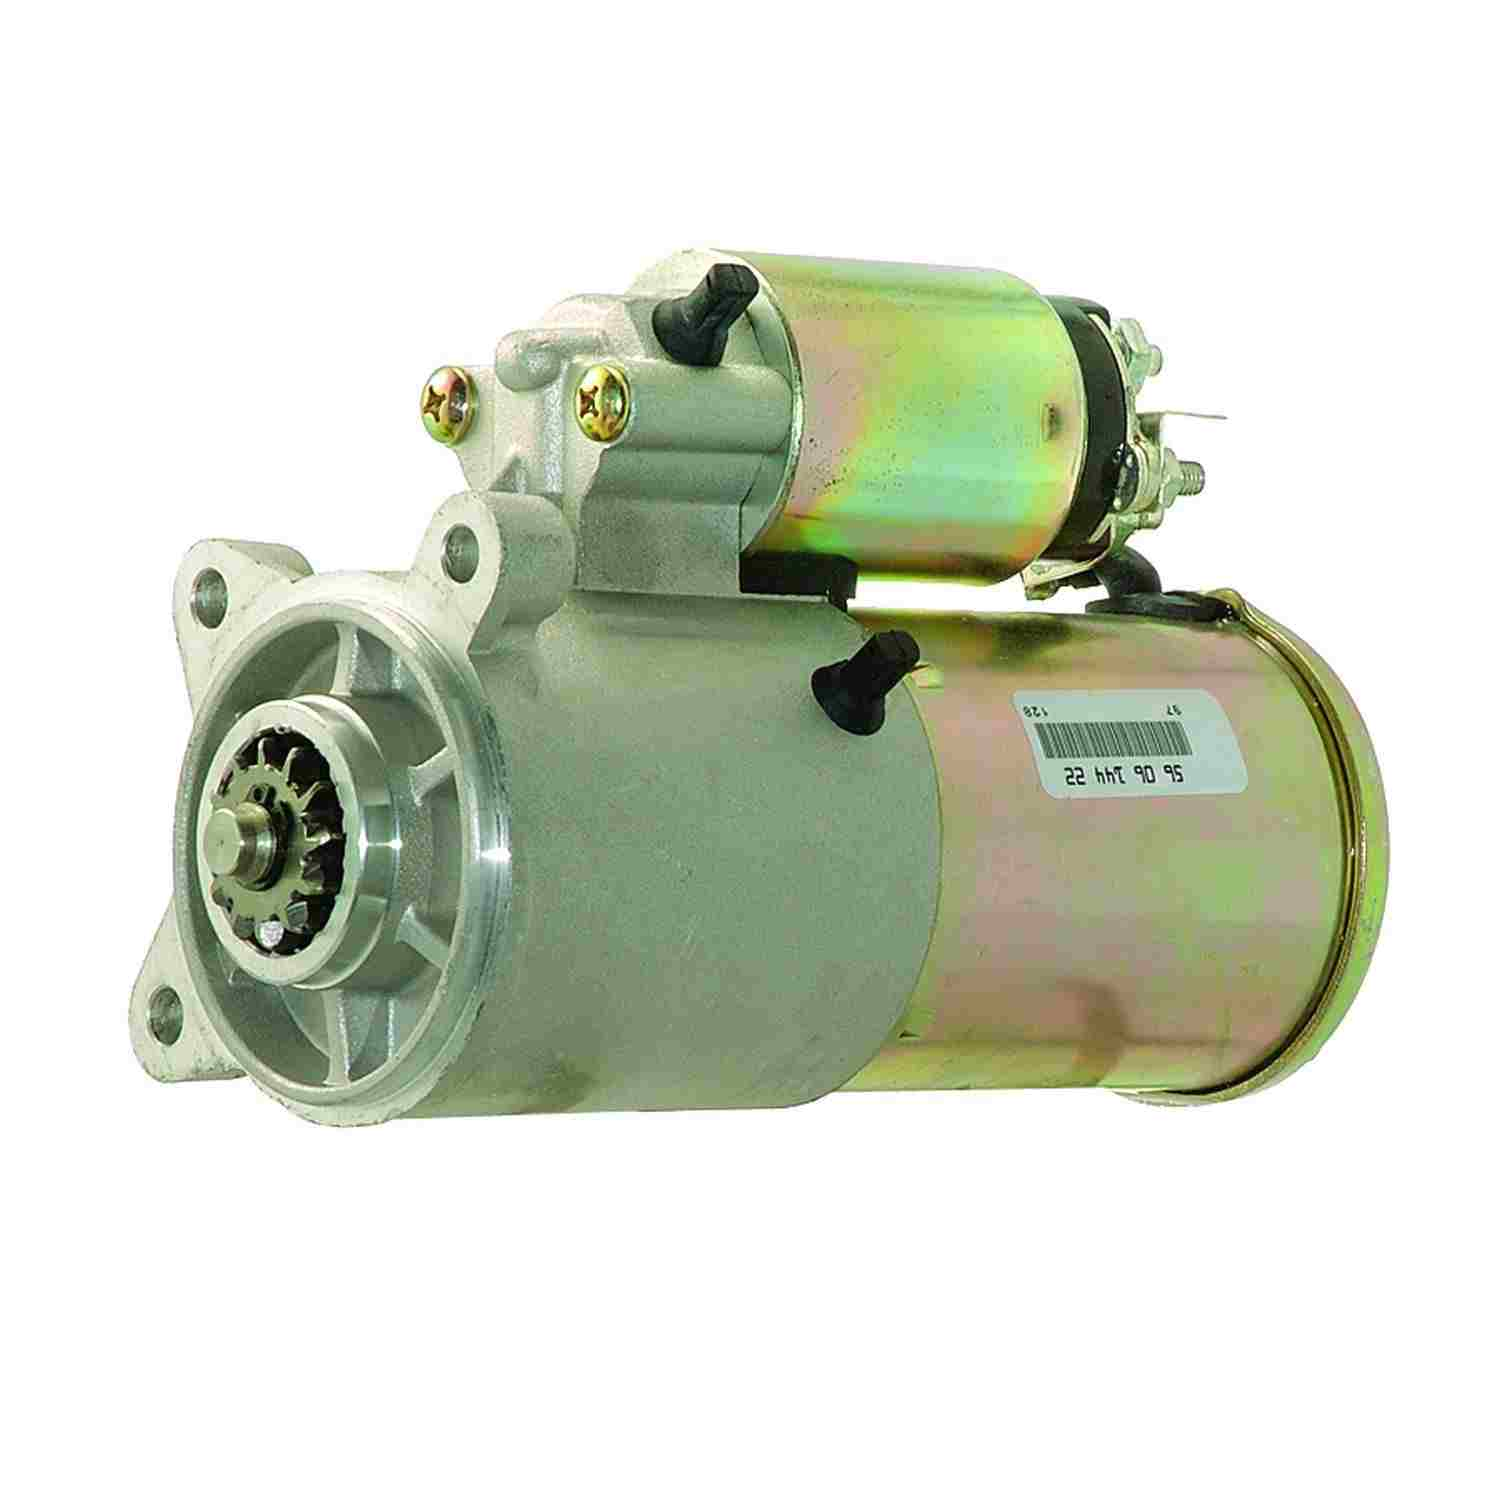 ACDELCO GOLD/PROFESSIONAL - Starter Motor - DCC 337-1053